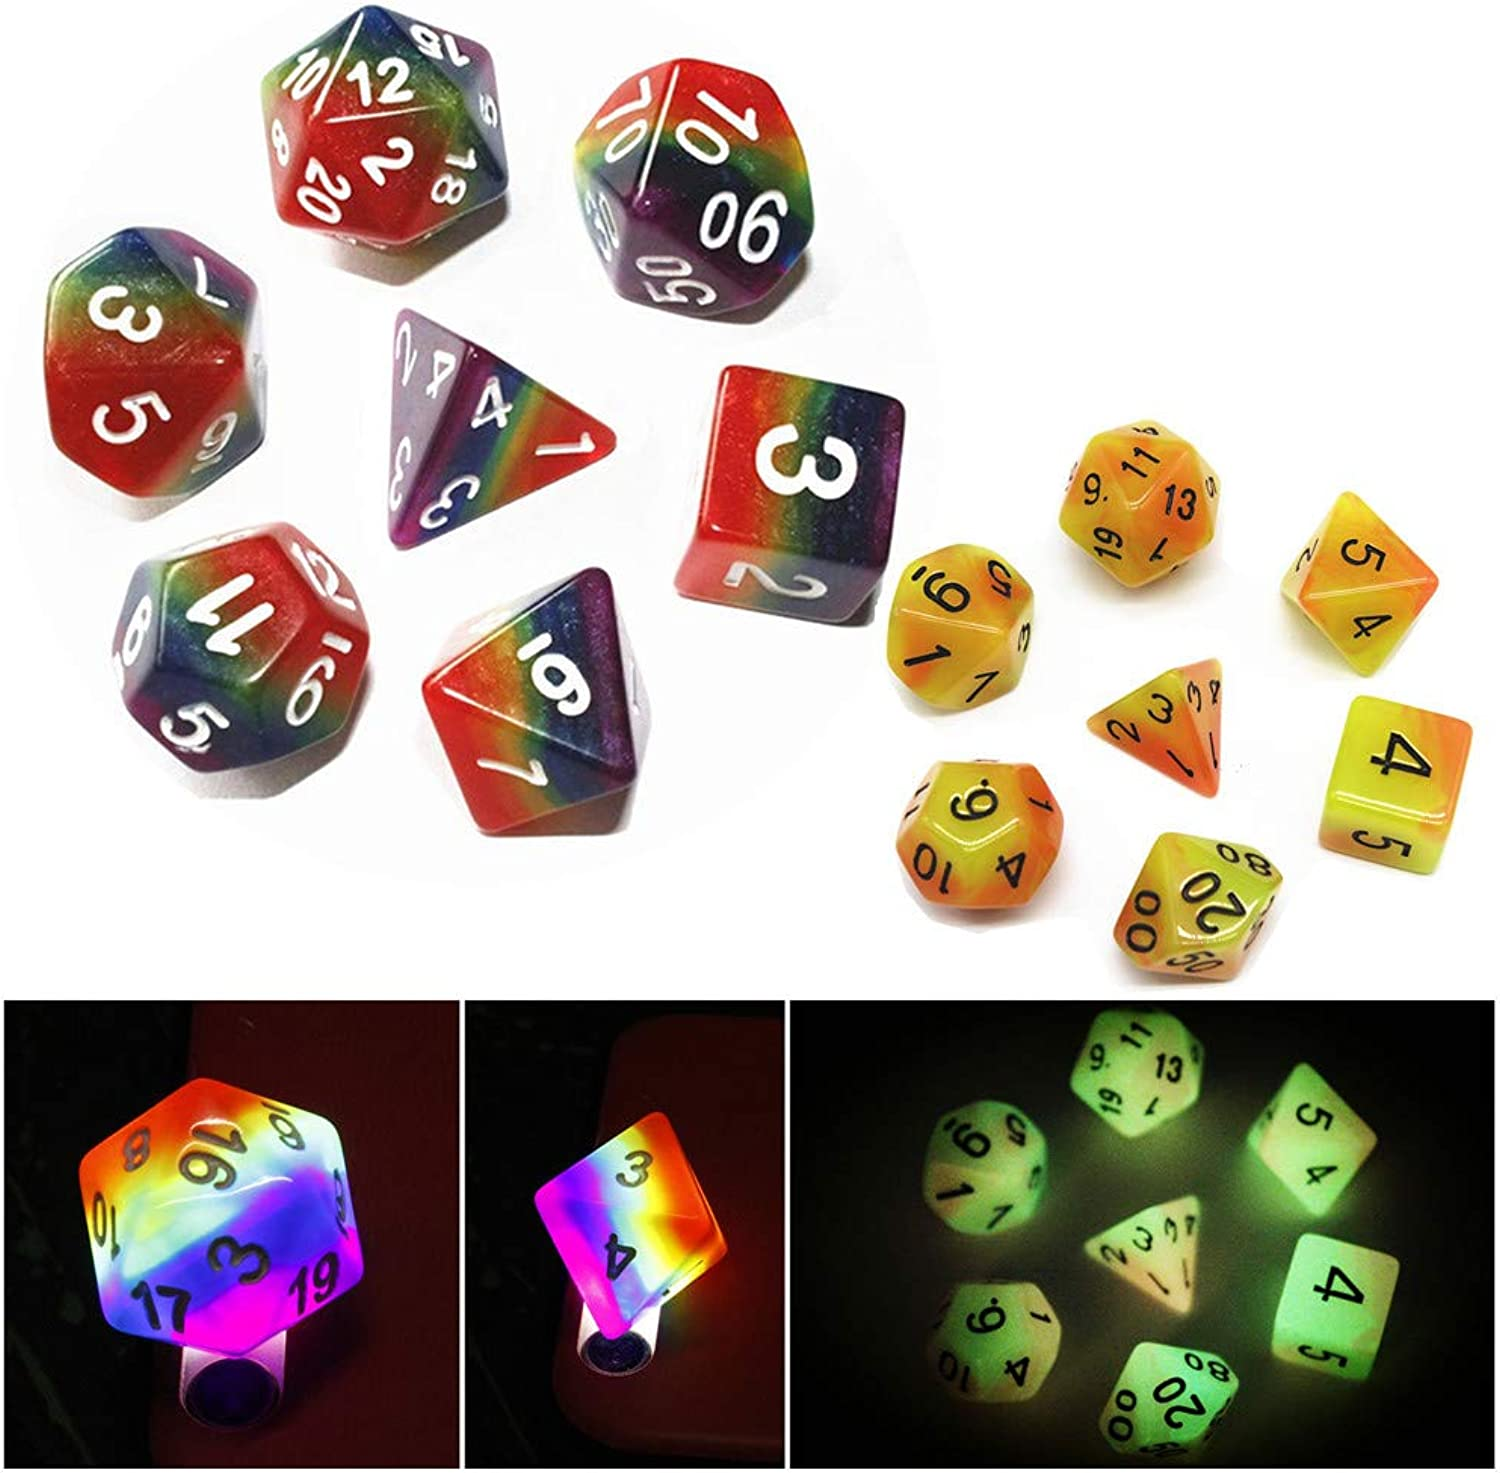 (Rainbow)  Game Dice Set Rainbow Polyhedral RPG Dice for Dungeons and Dragons(DND) Pathfinder Role Playing Game MTG Tabletop Dice 7Die Dice D20 D12 D10 D8 D6 D4